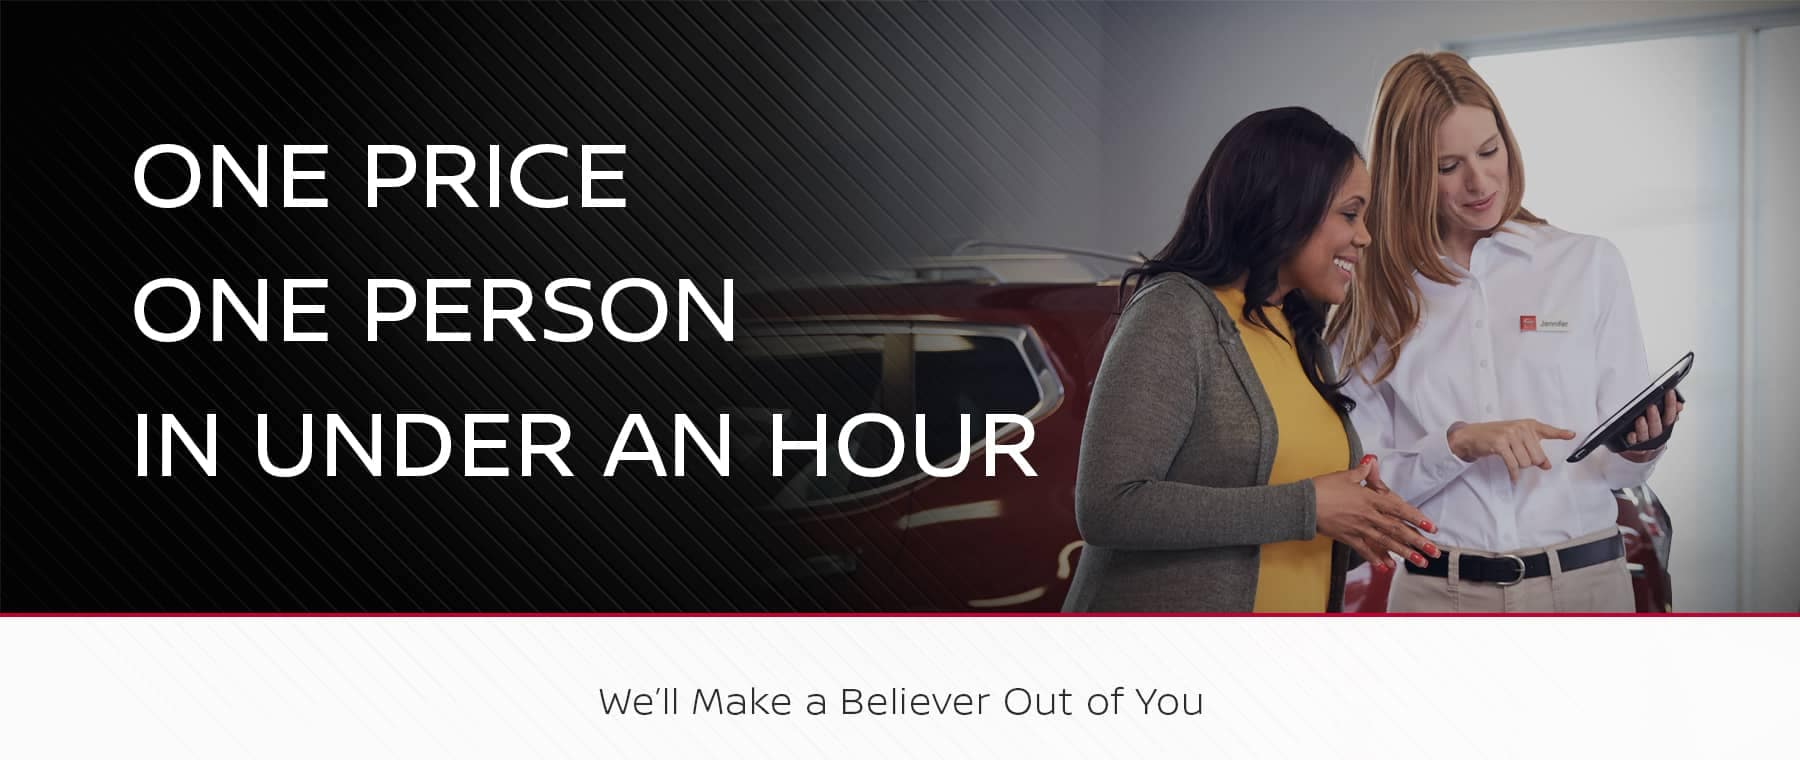 web-onepriceoneperson_Nissan